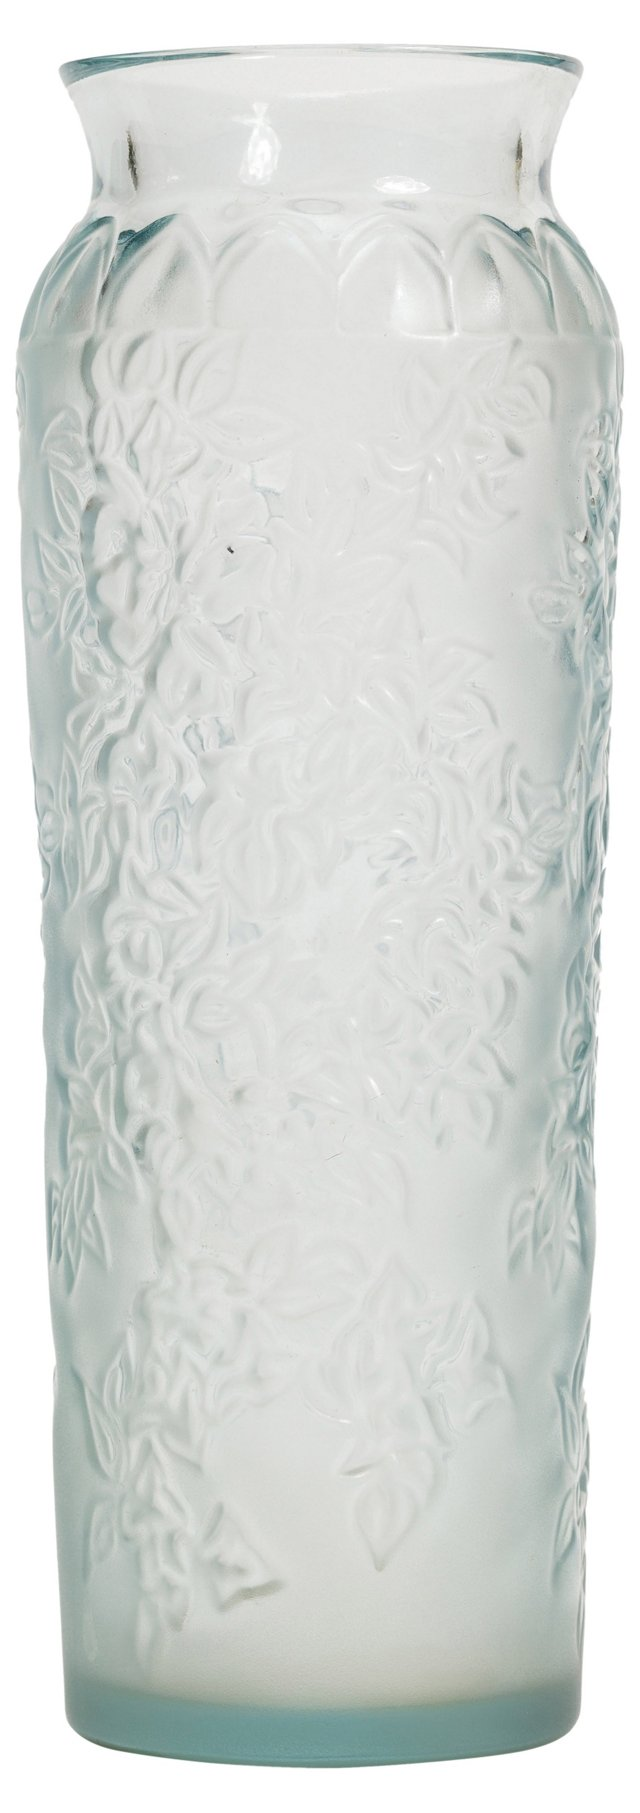 Lalique Blue Bougainvillea Vase